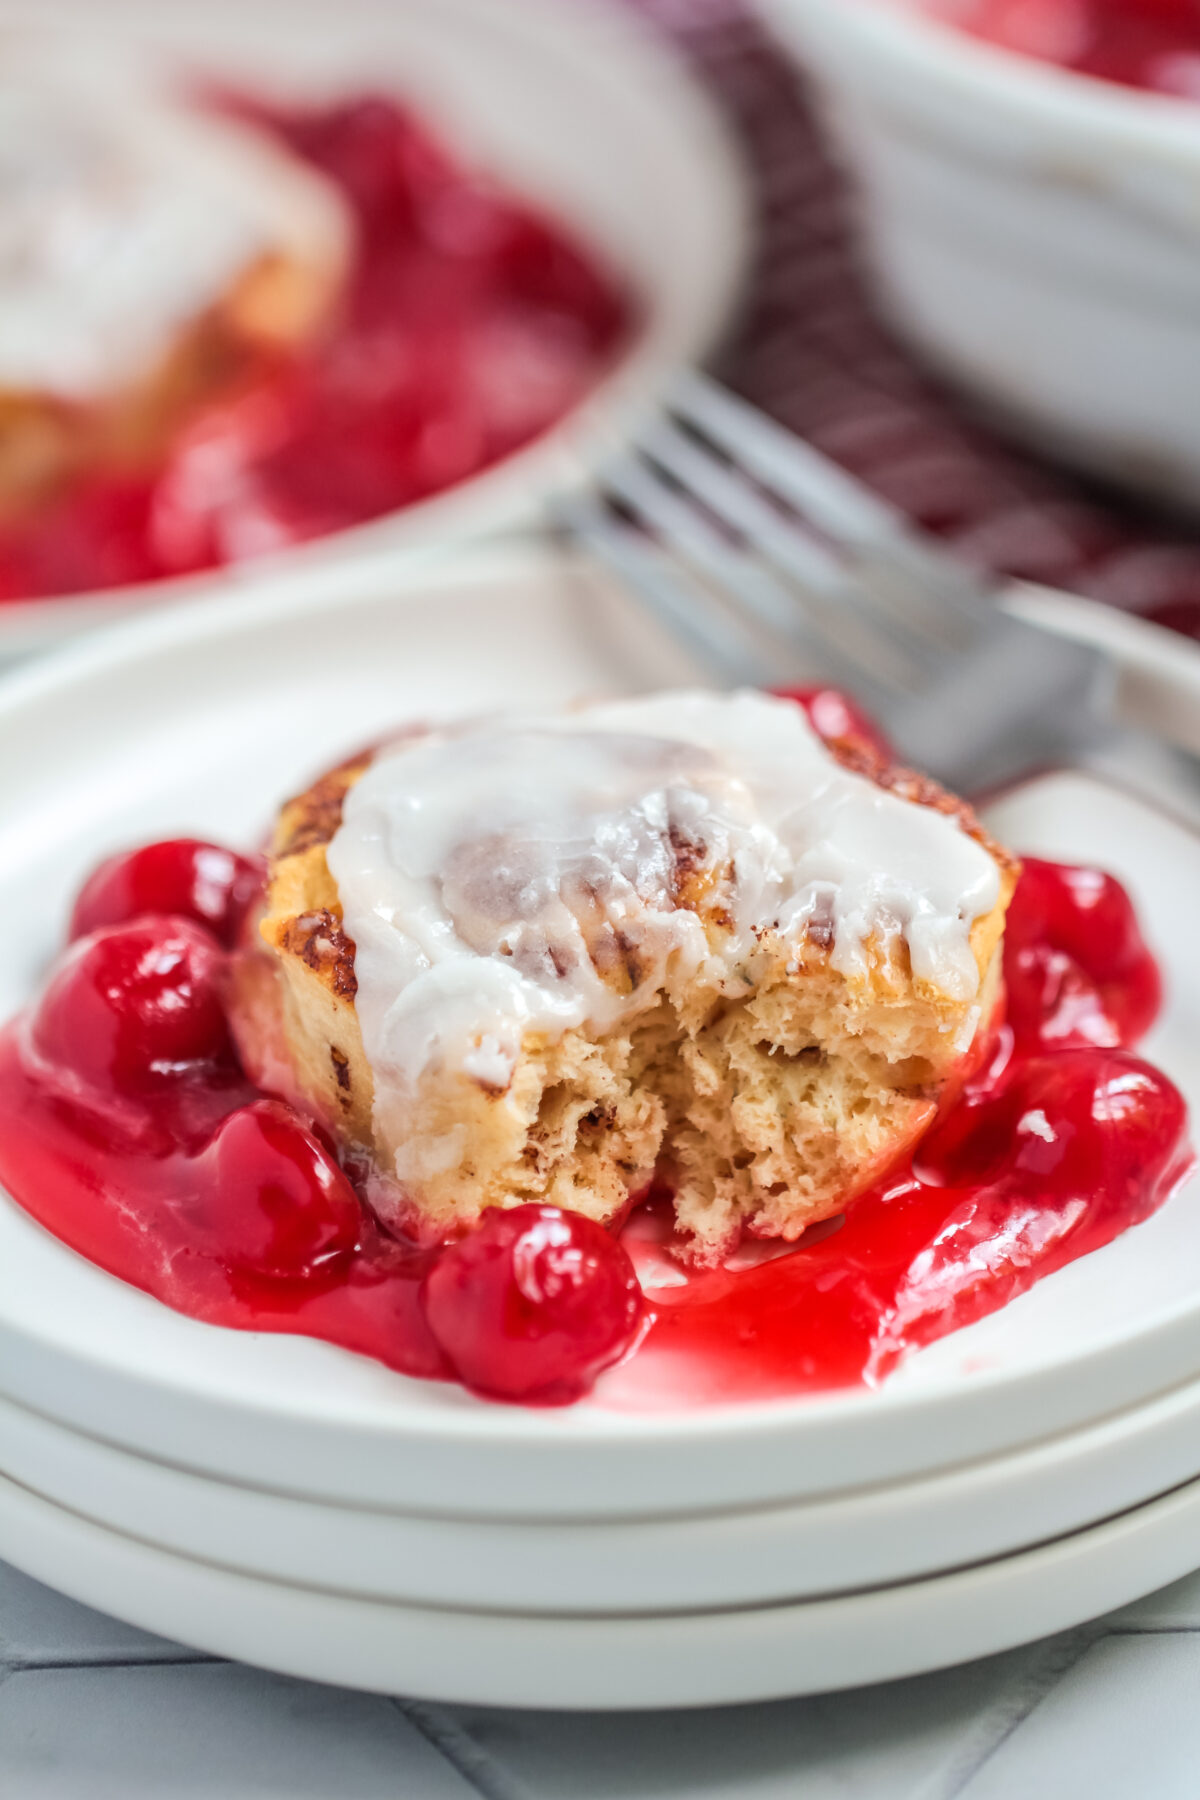 This Cinnamon Roll Cherry Cobbler Recipe uses just two ingredients. Warm and gooey, this easy dessert is perfect for any occasion.